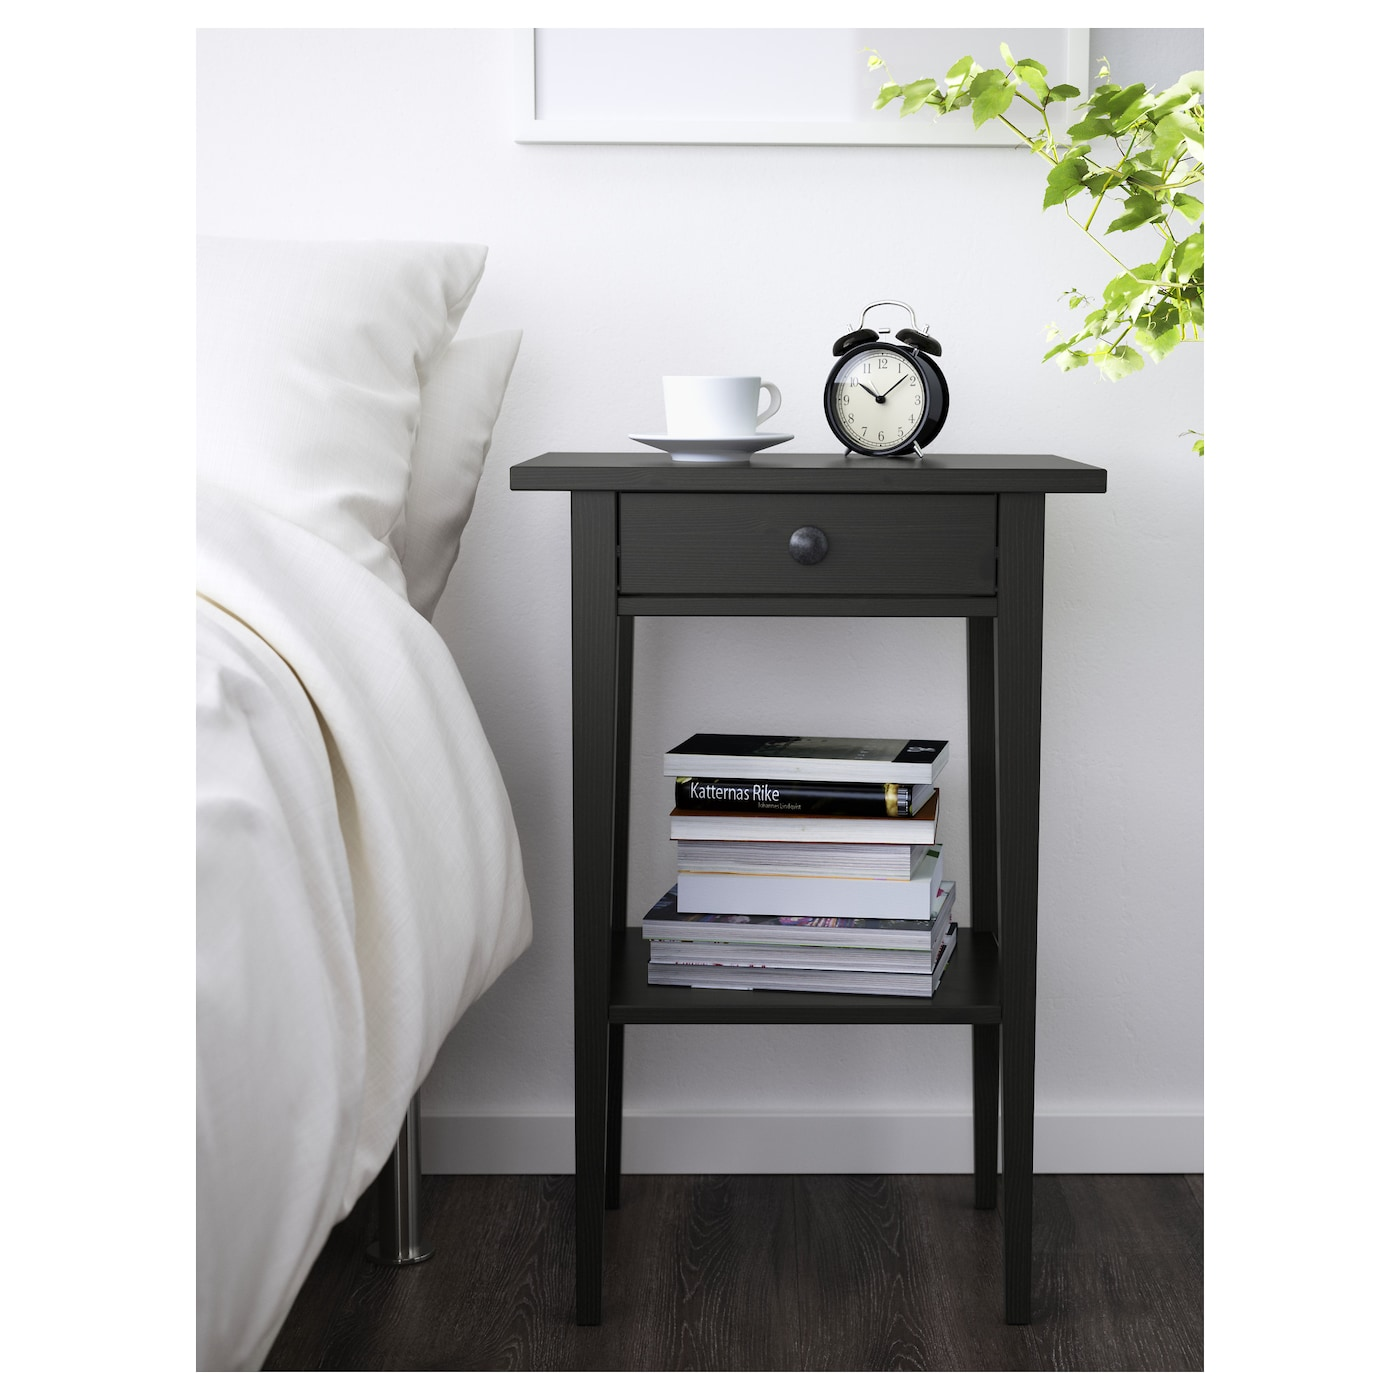 Hemnes Bed Hack Hemnes Bedside Table Black Brown 46x35 Cm Ikea